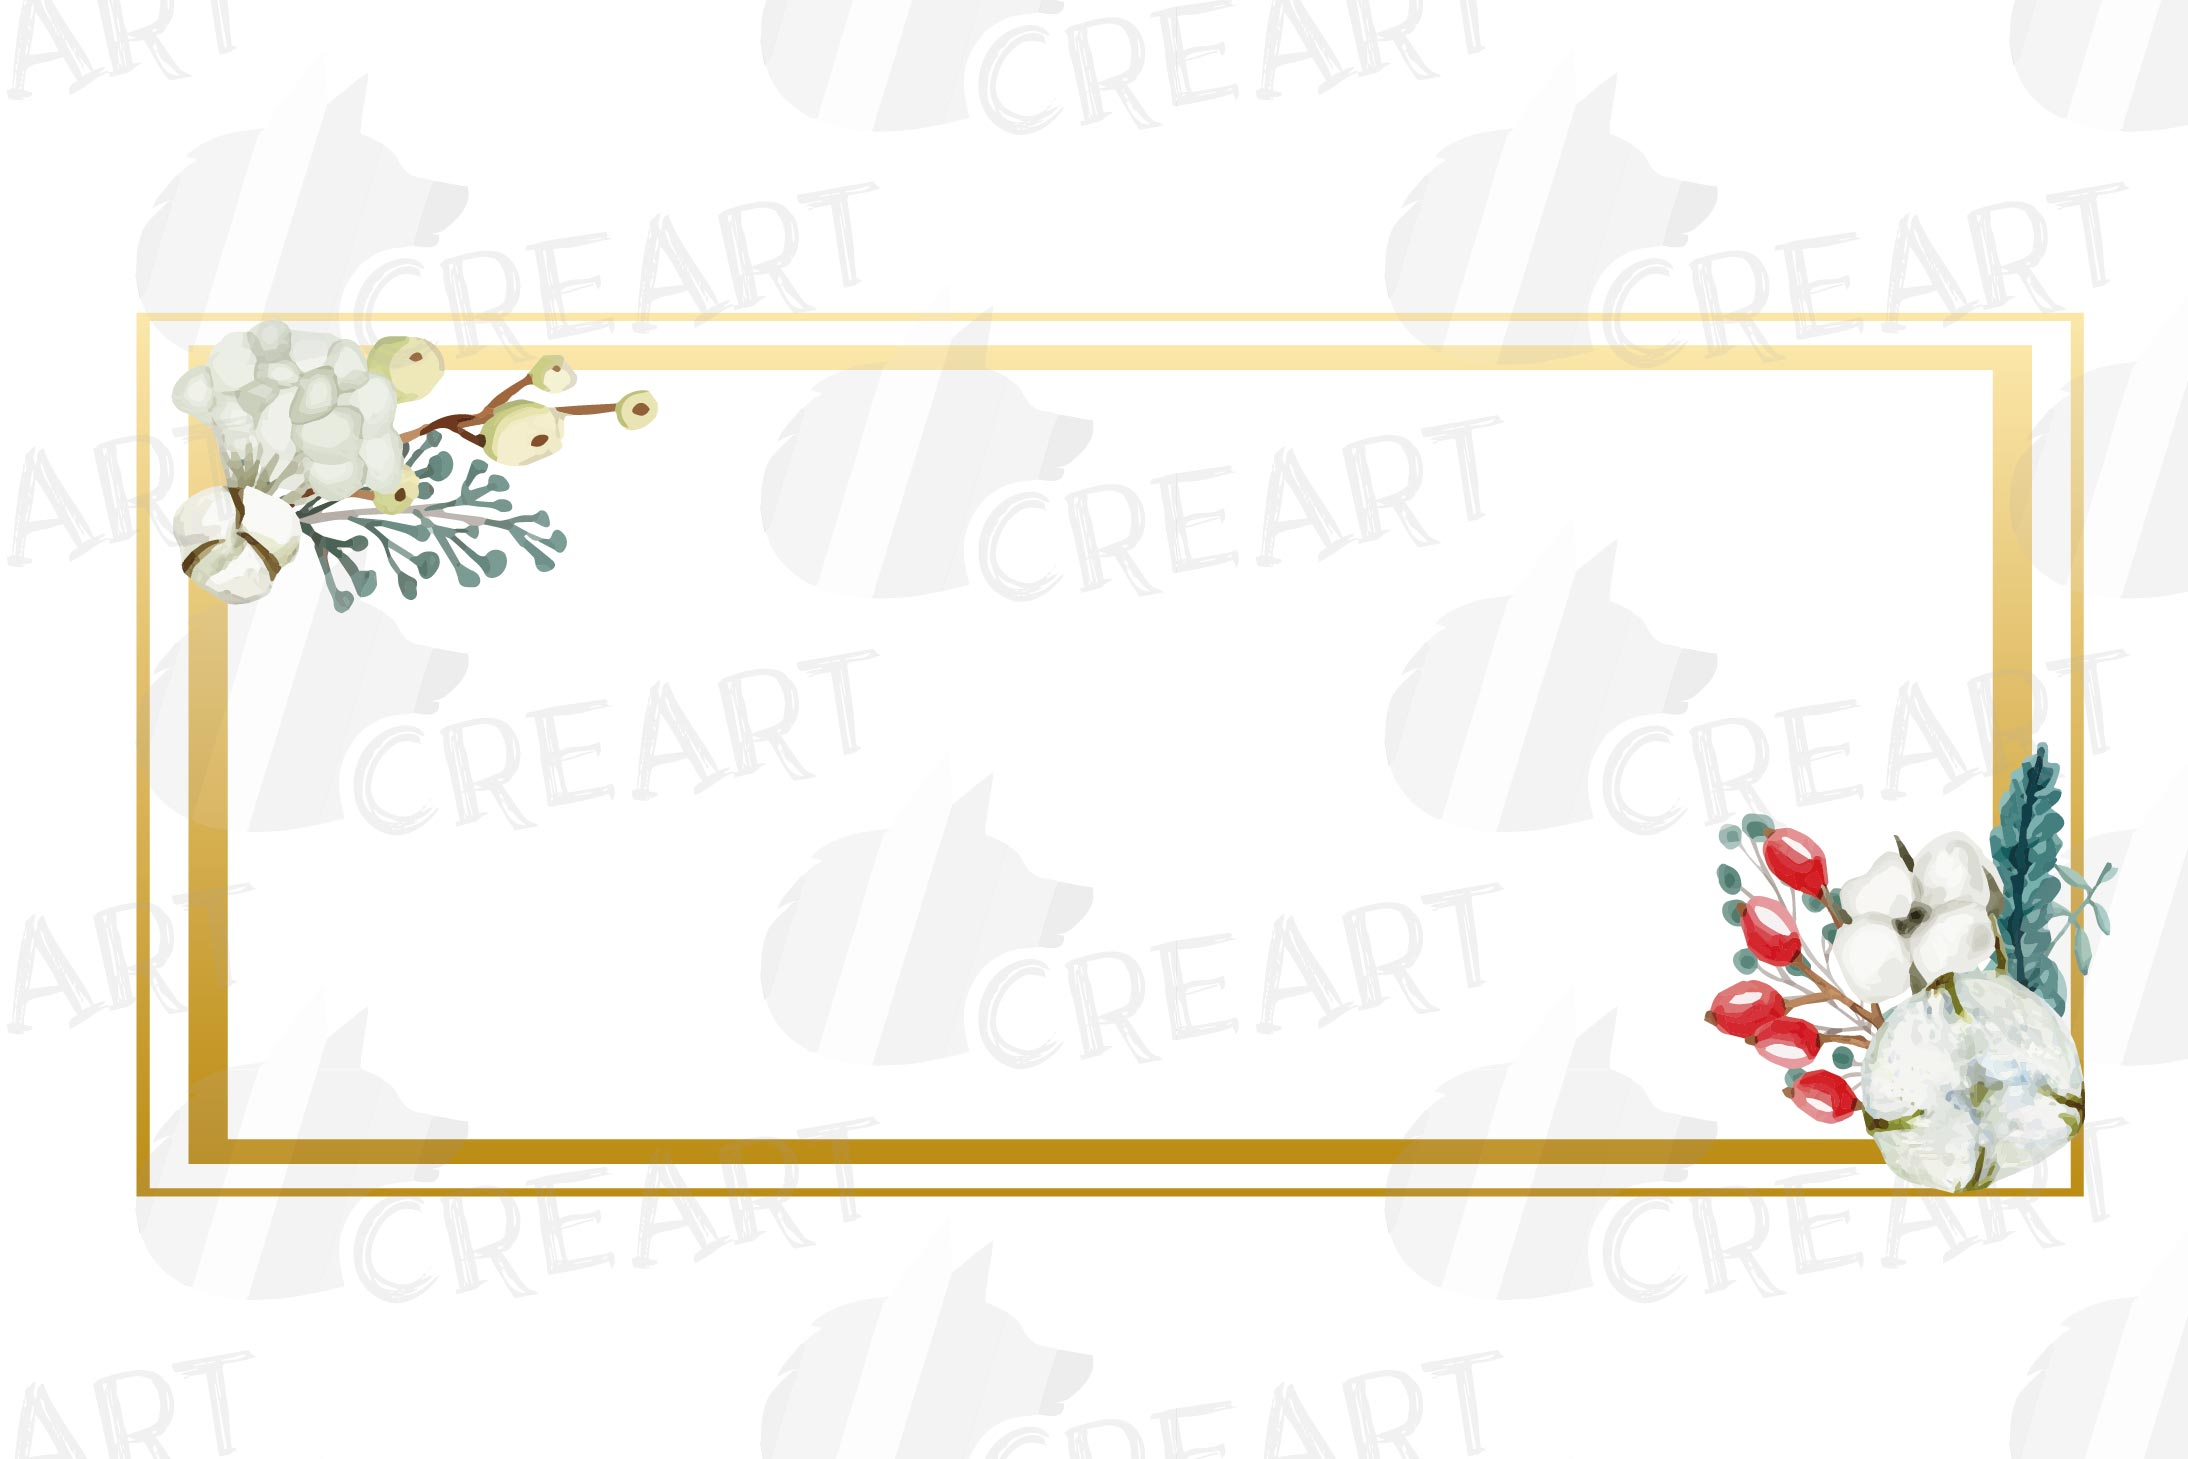 Cotton bolls and fir branch leafy autumn and winter decor example image 2